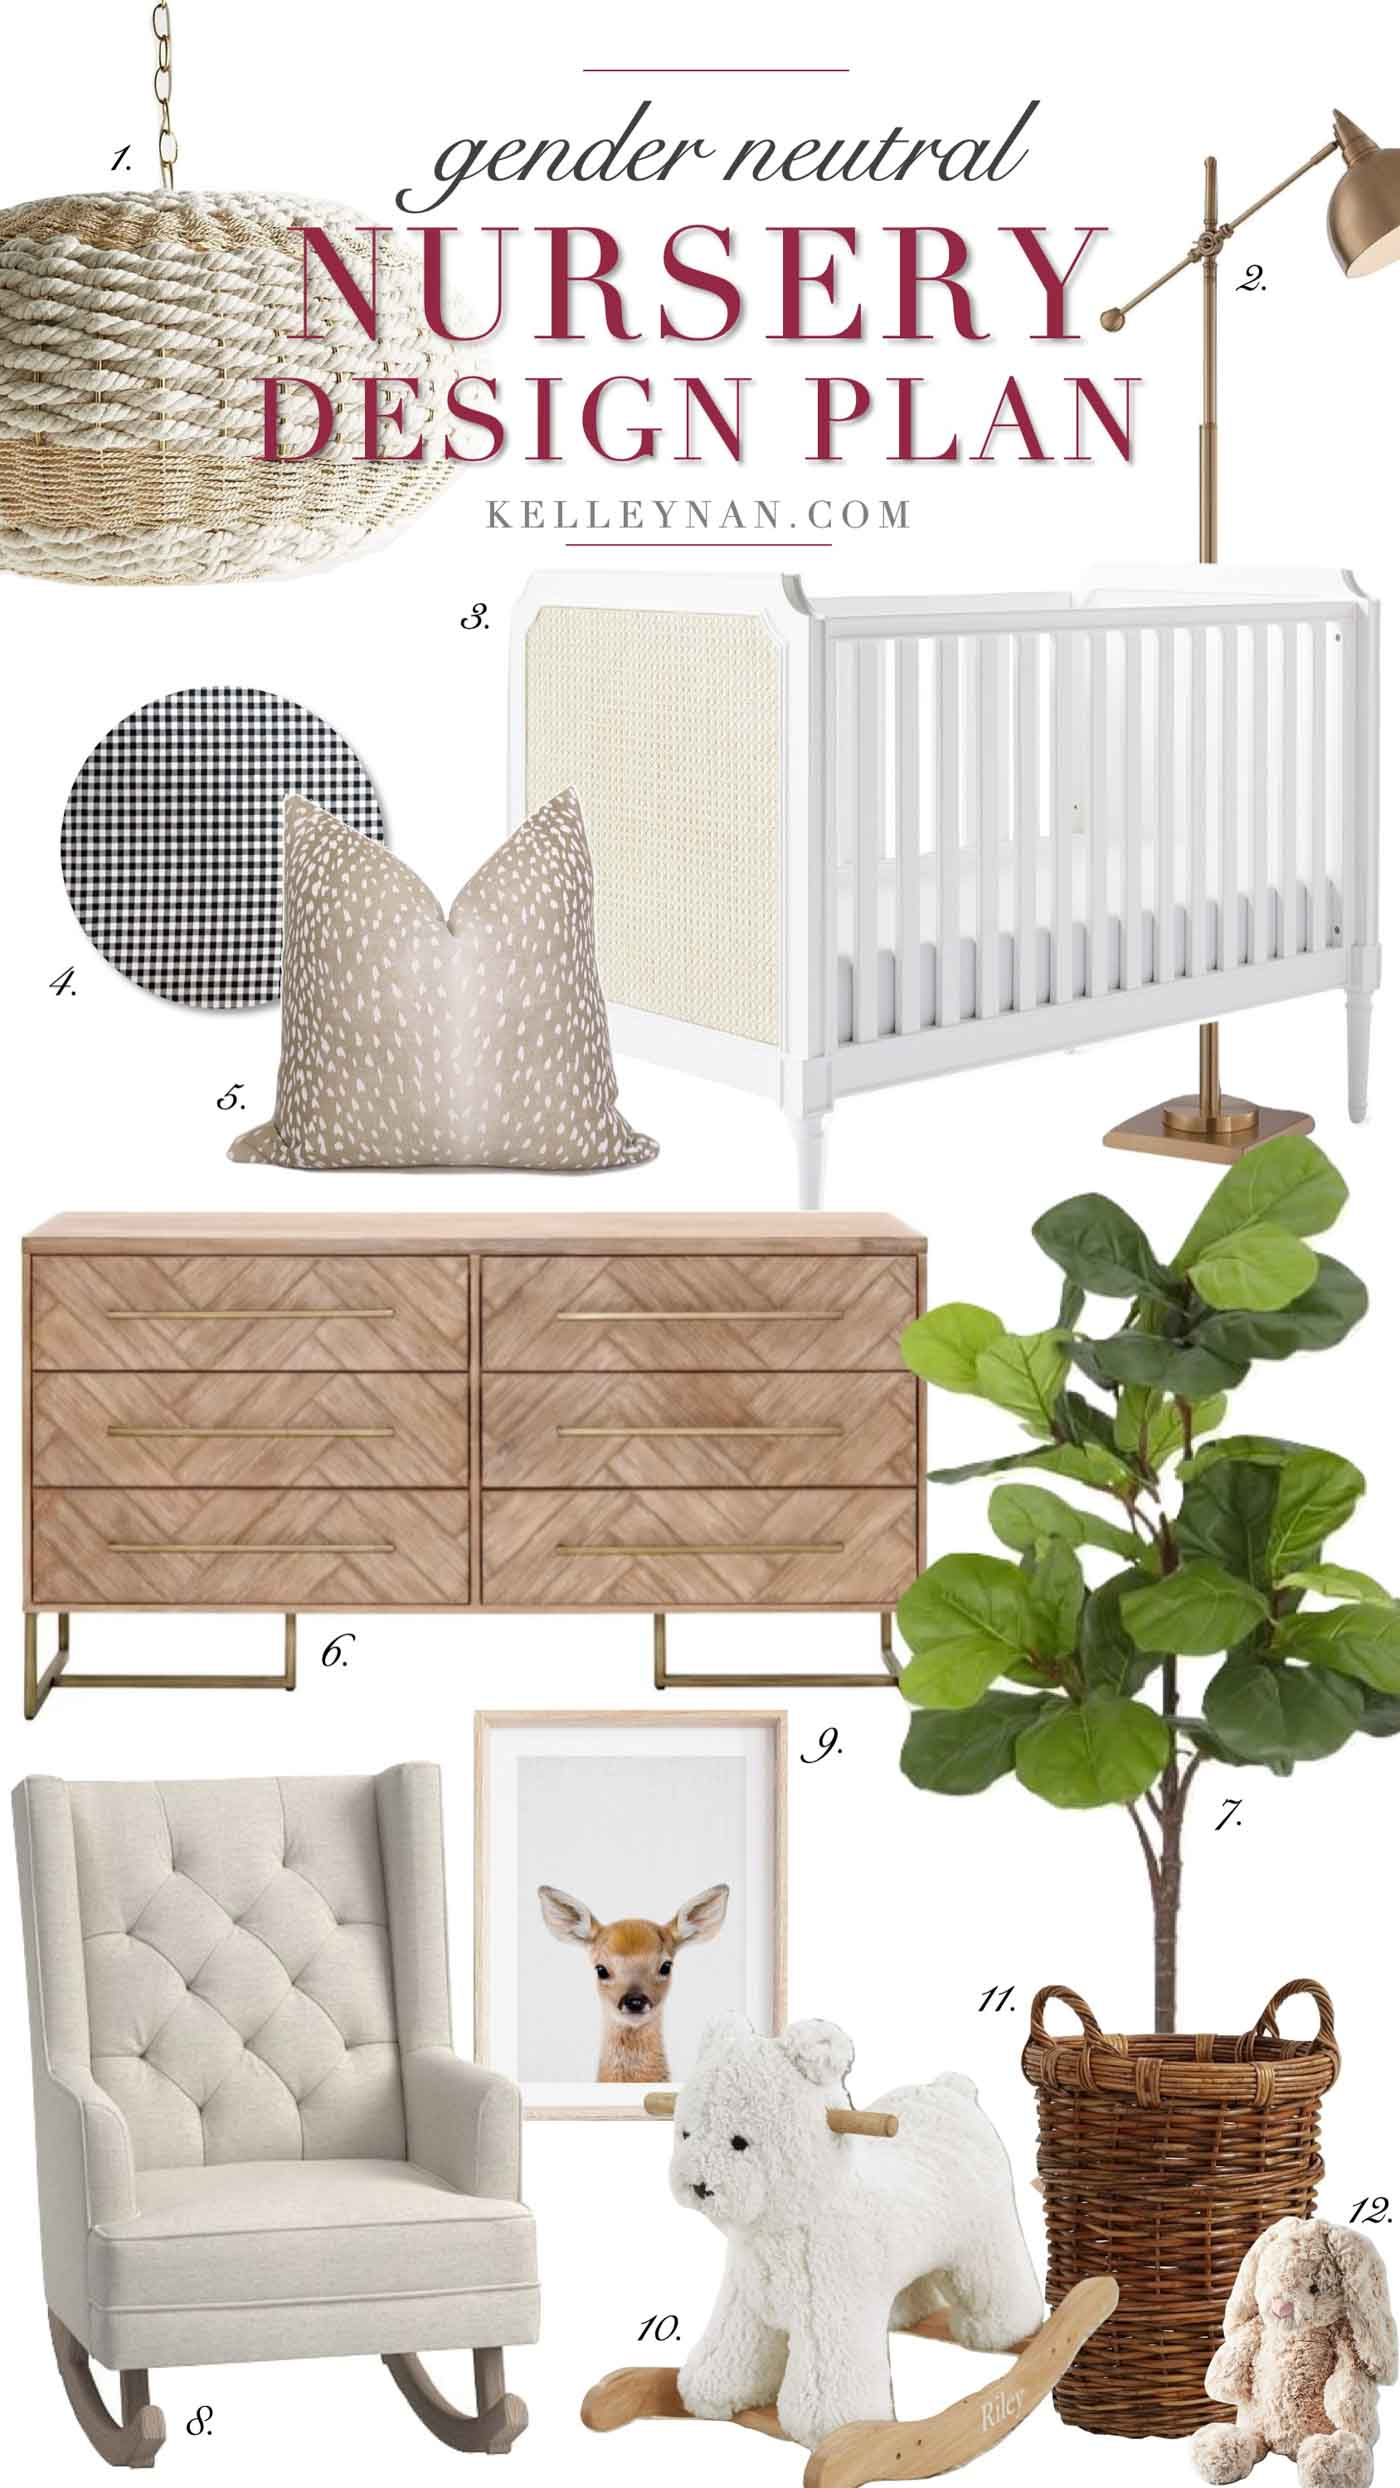 Gender Neutral Nursery Design and Decor with a white, gray, and natural color scheme and woodland animals